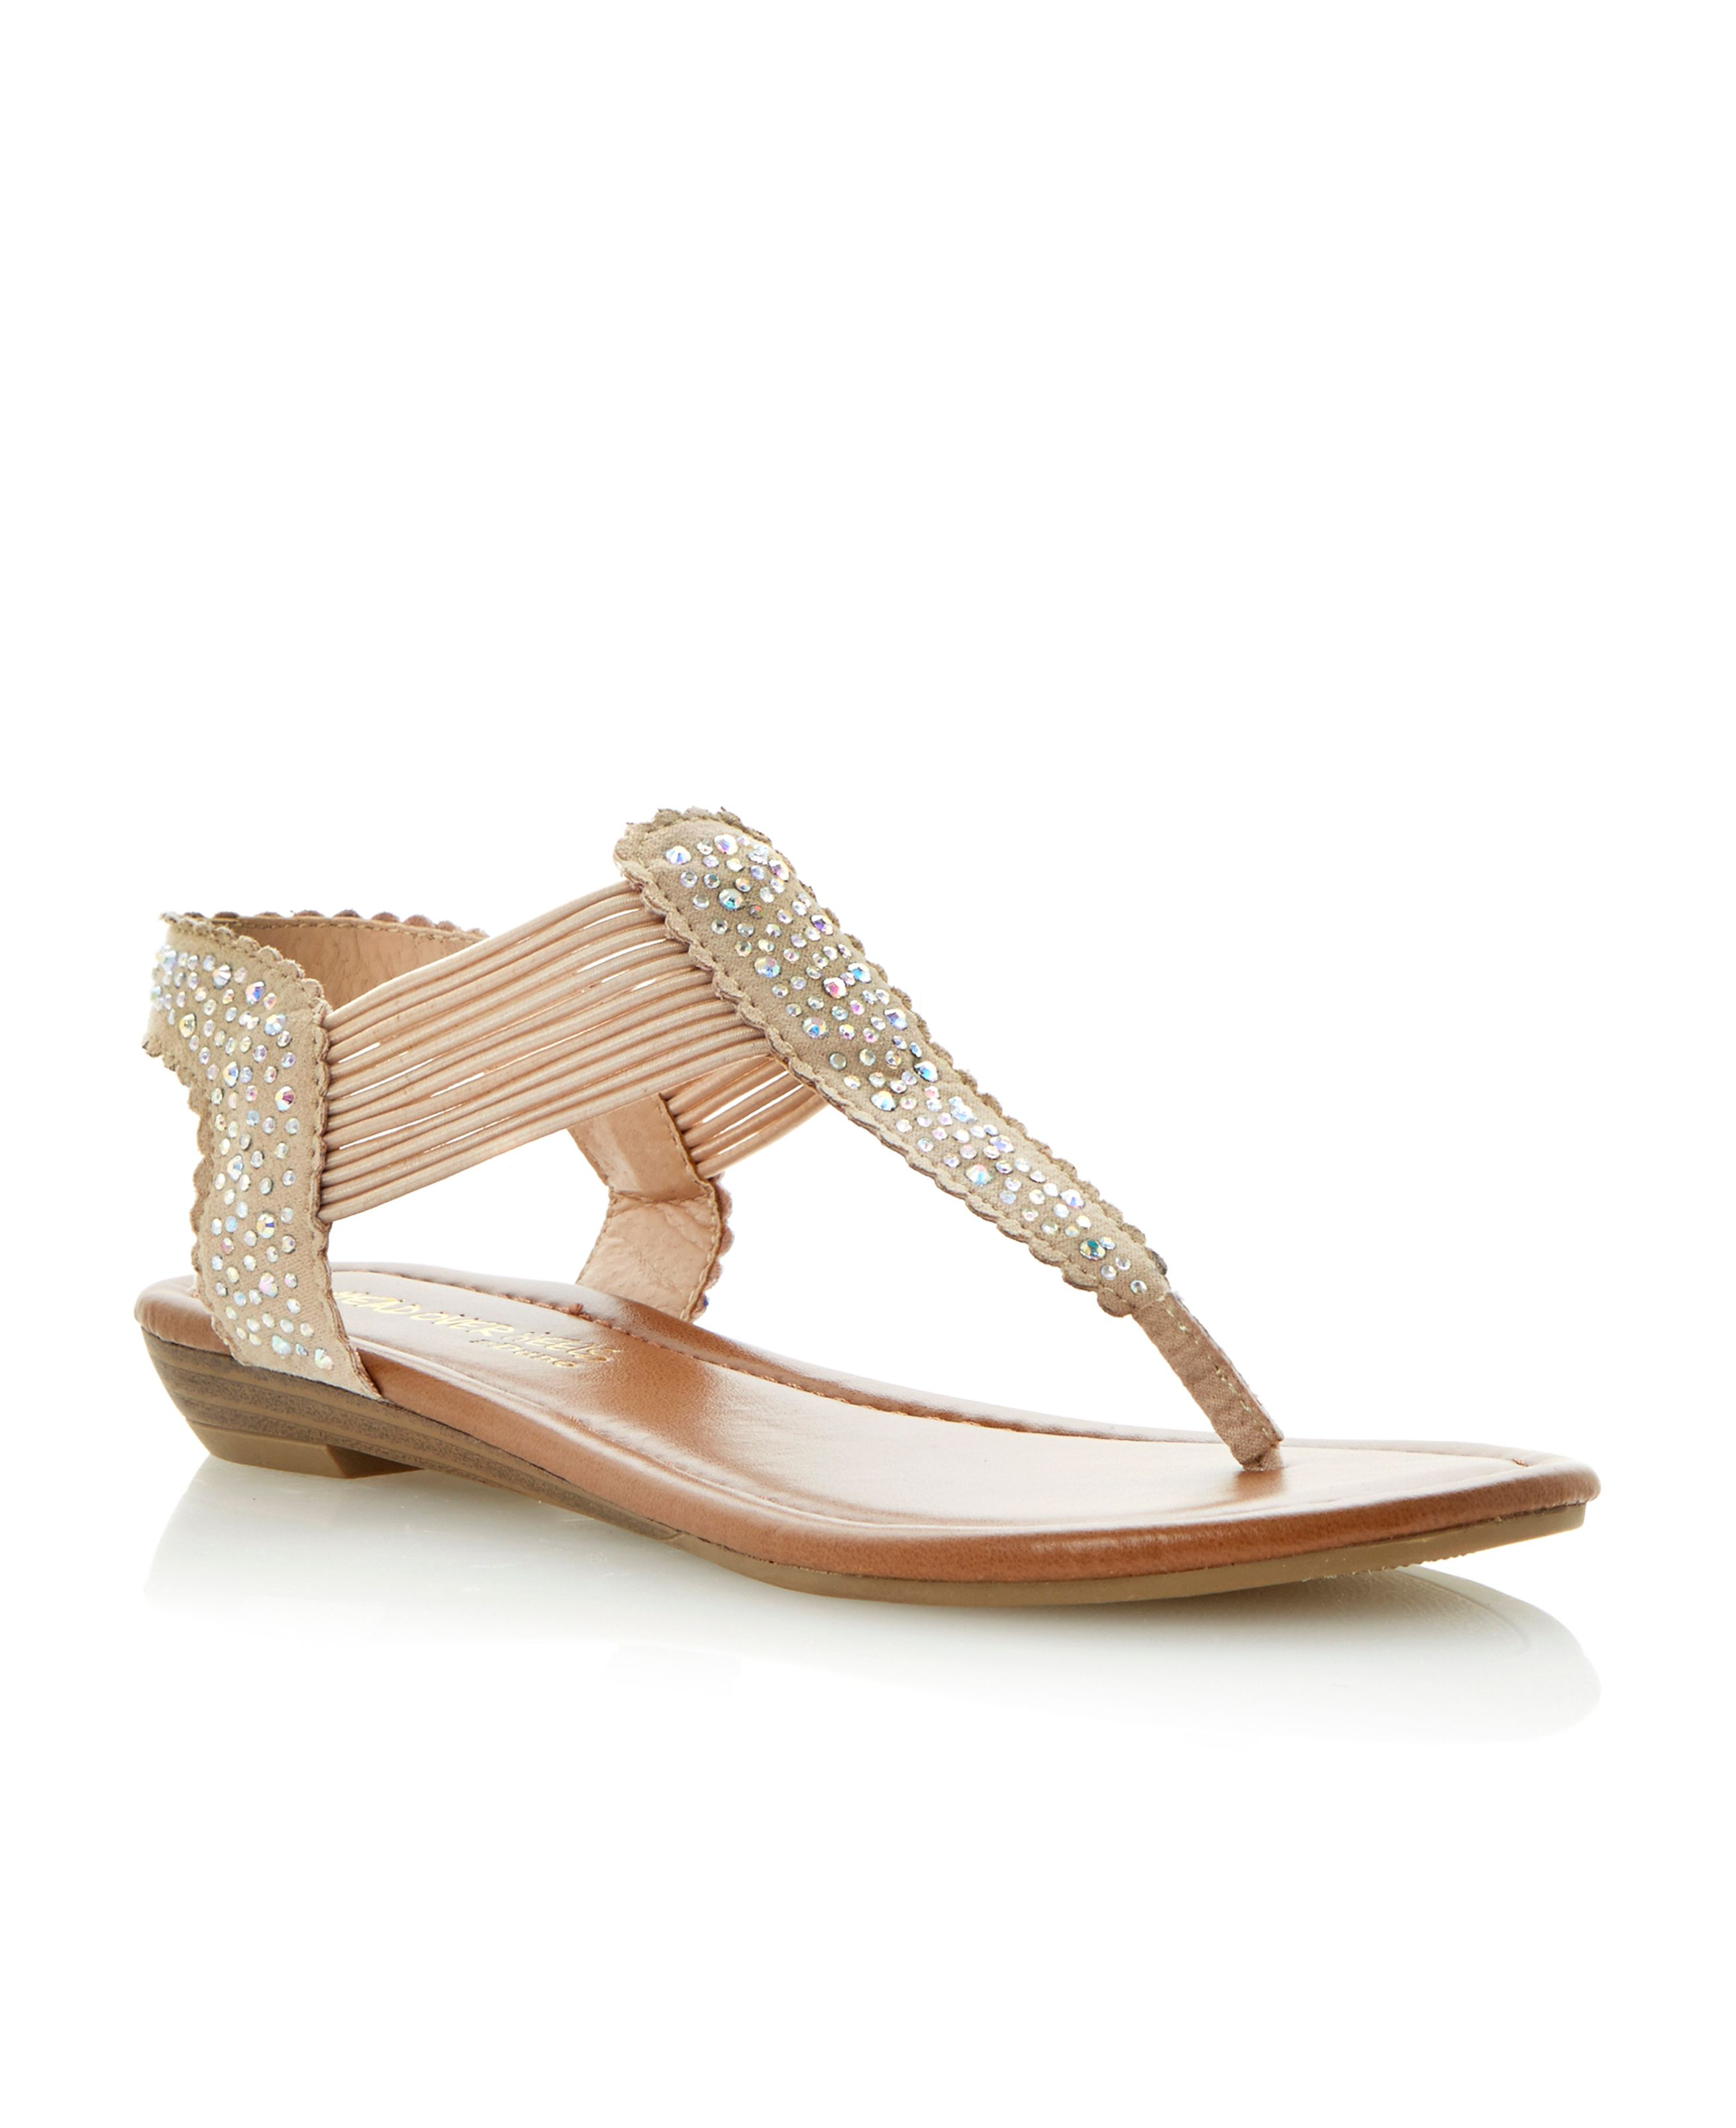 Knight heatseal gem wedge sandals